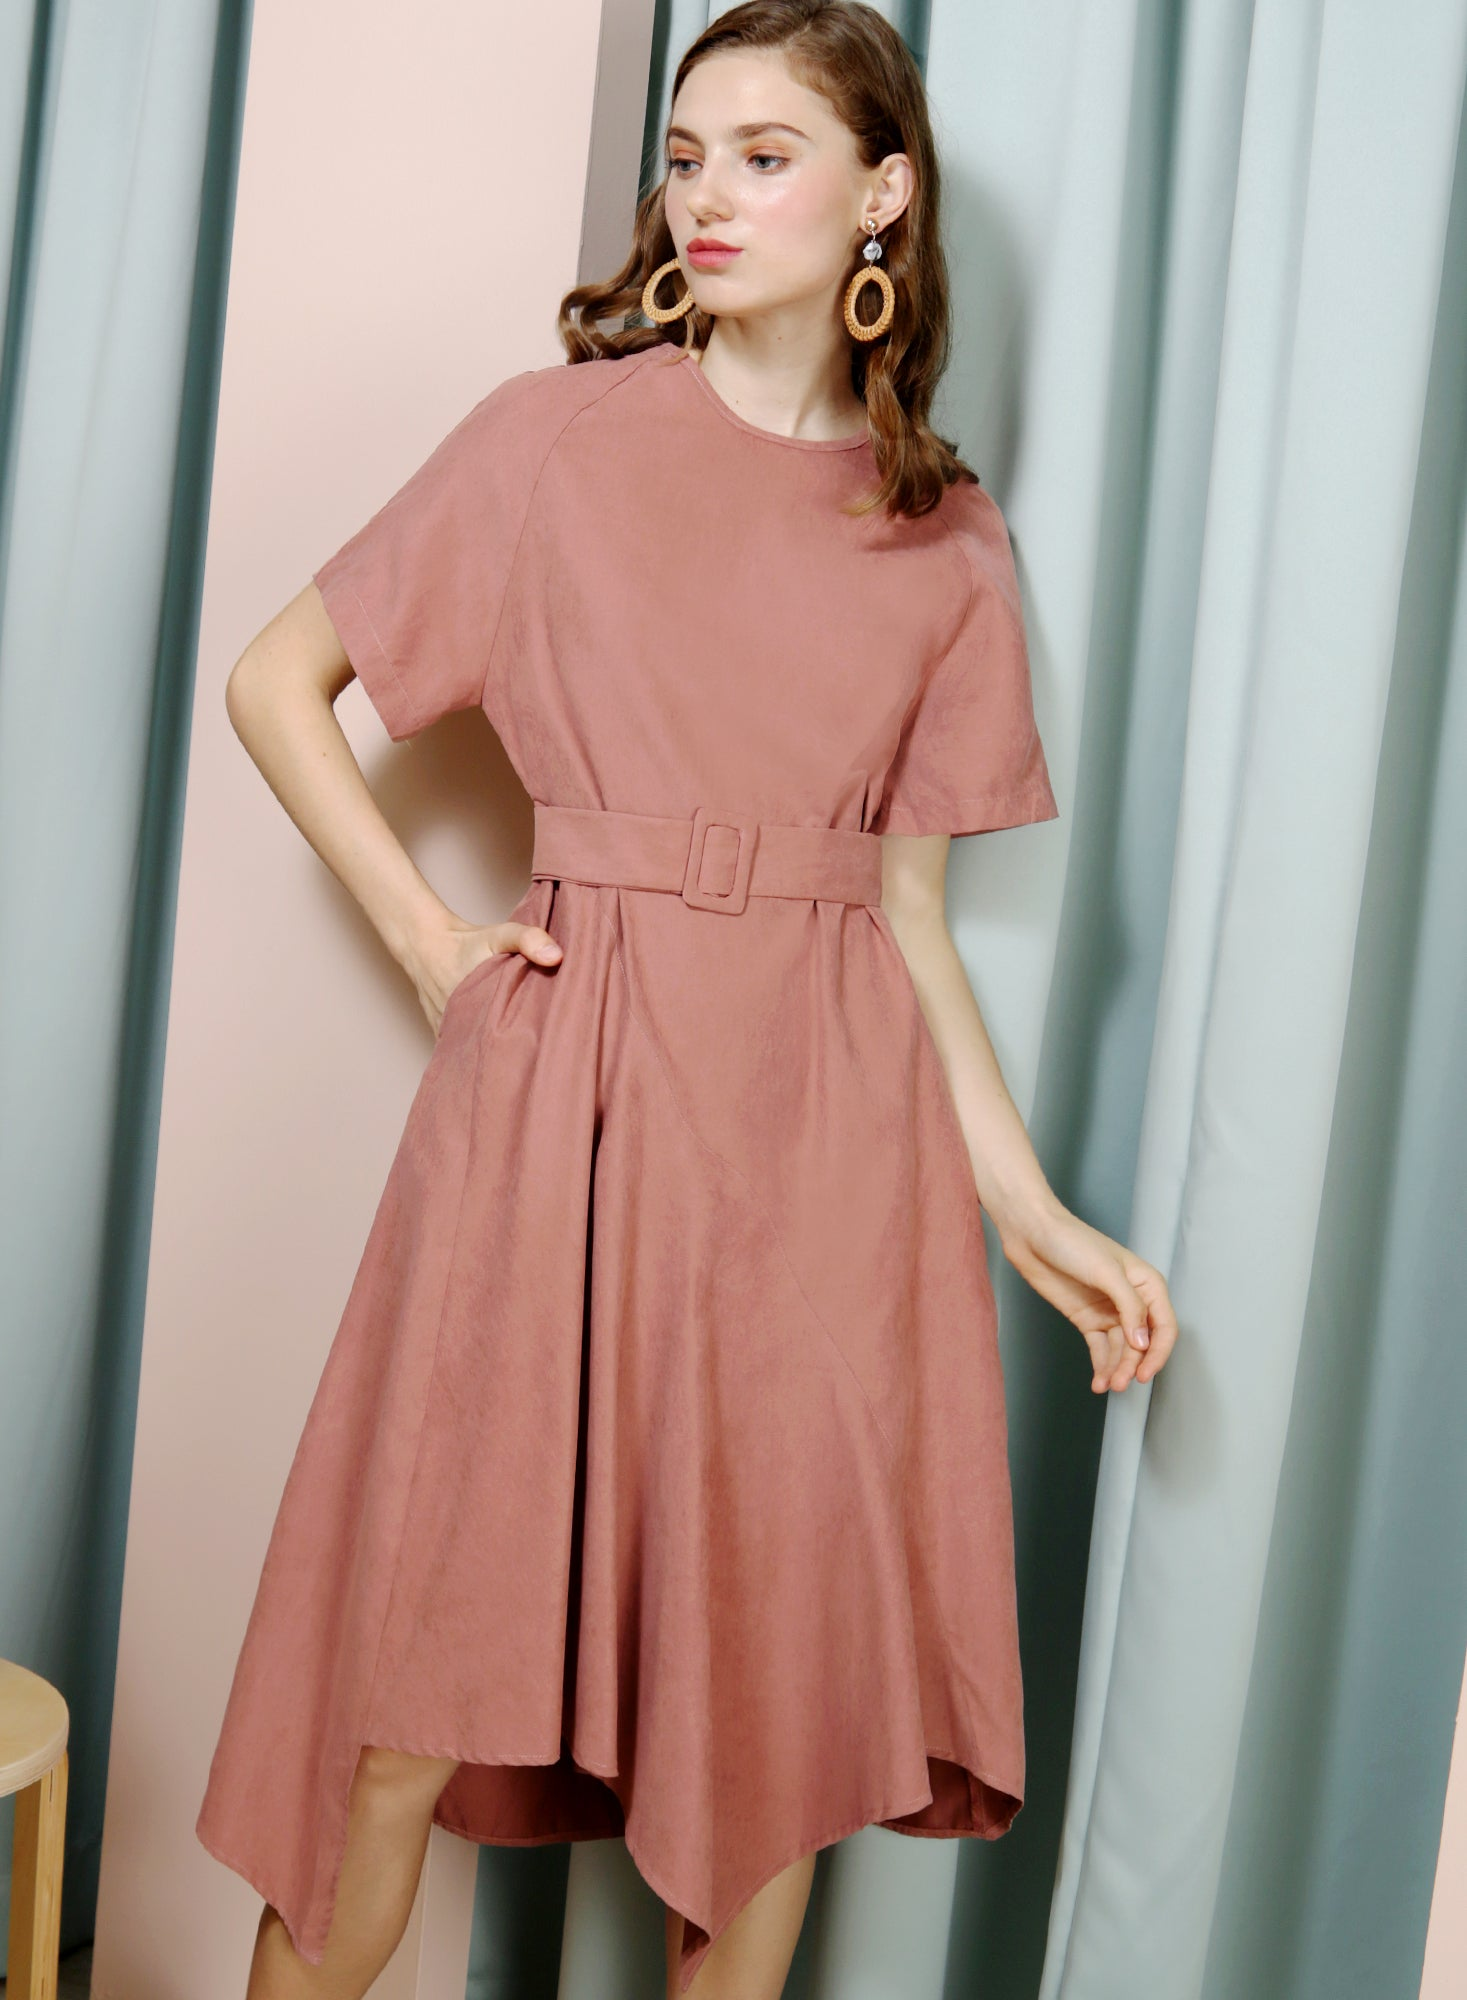 Tangent Asymmetric Hem Faux Suede Dress (Dusty Rose) at $ 41.50 only sold at And Well Dressed Online Fashion Store Singapore